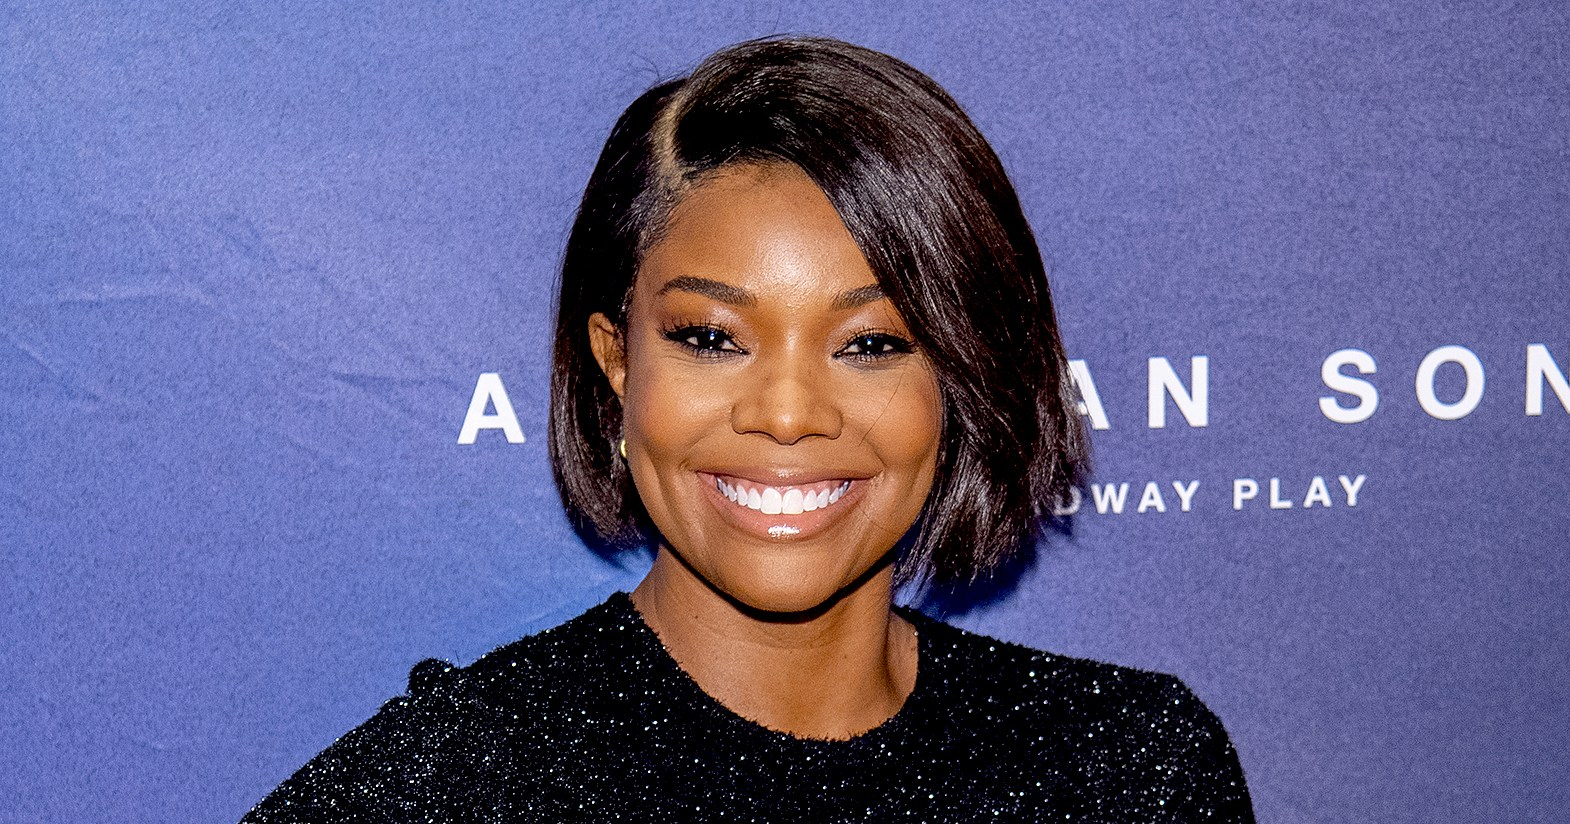 Gabrielle Union Hasn't Showered But Is 'in Heaven' With Baby